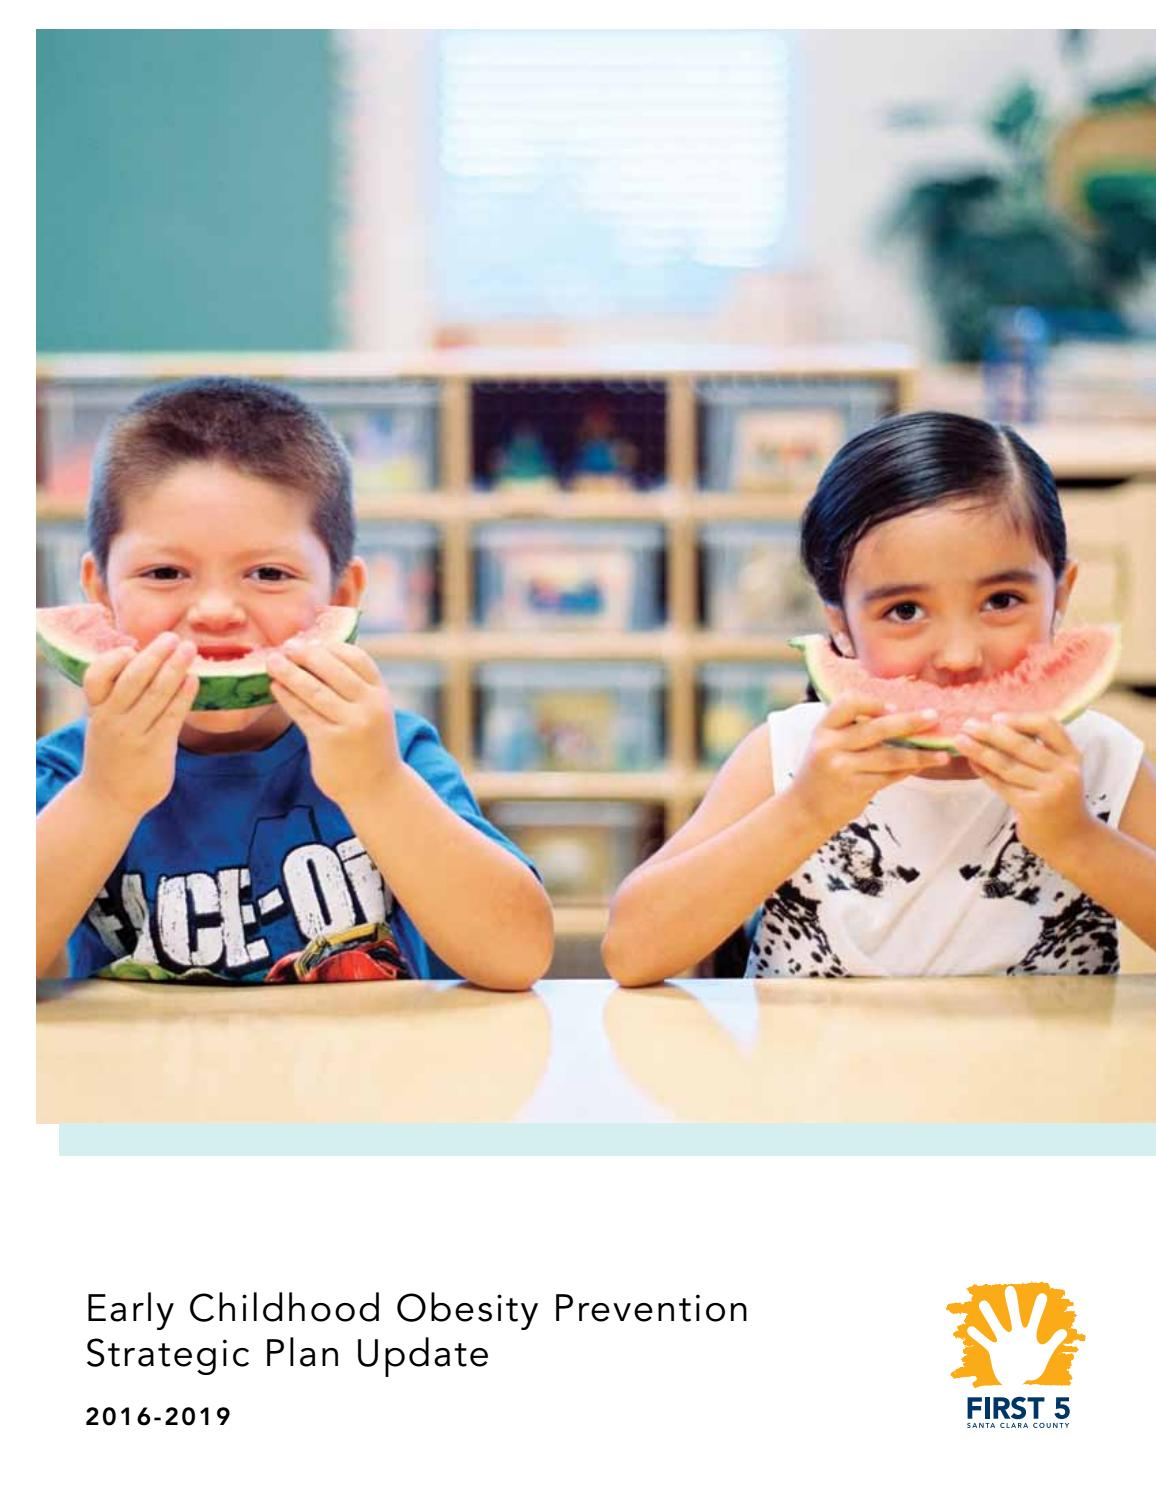 Early Childhood Obesity Prevention Strategic Plan 2016 2019 By First